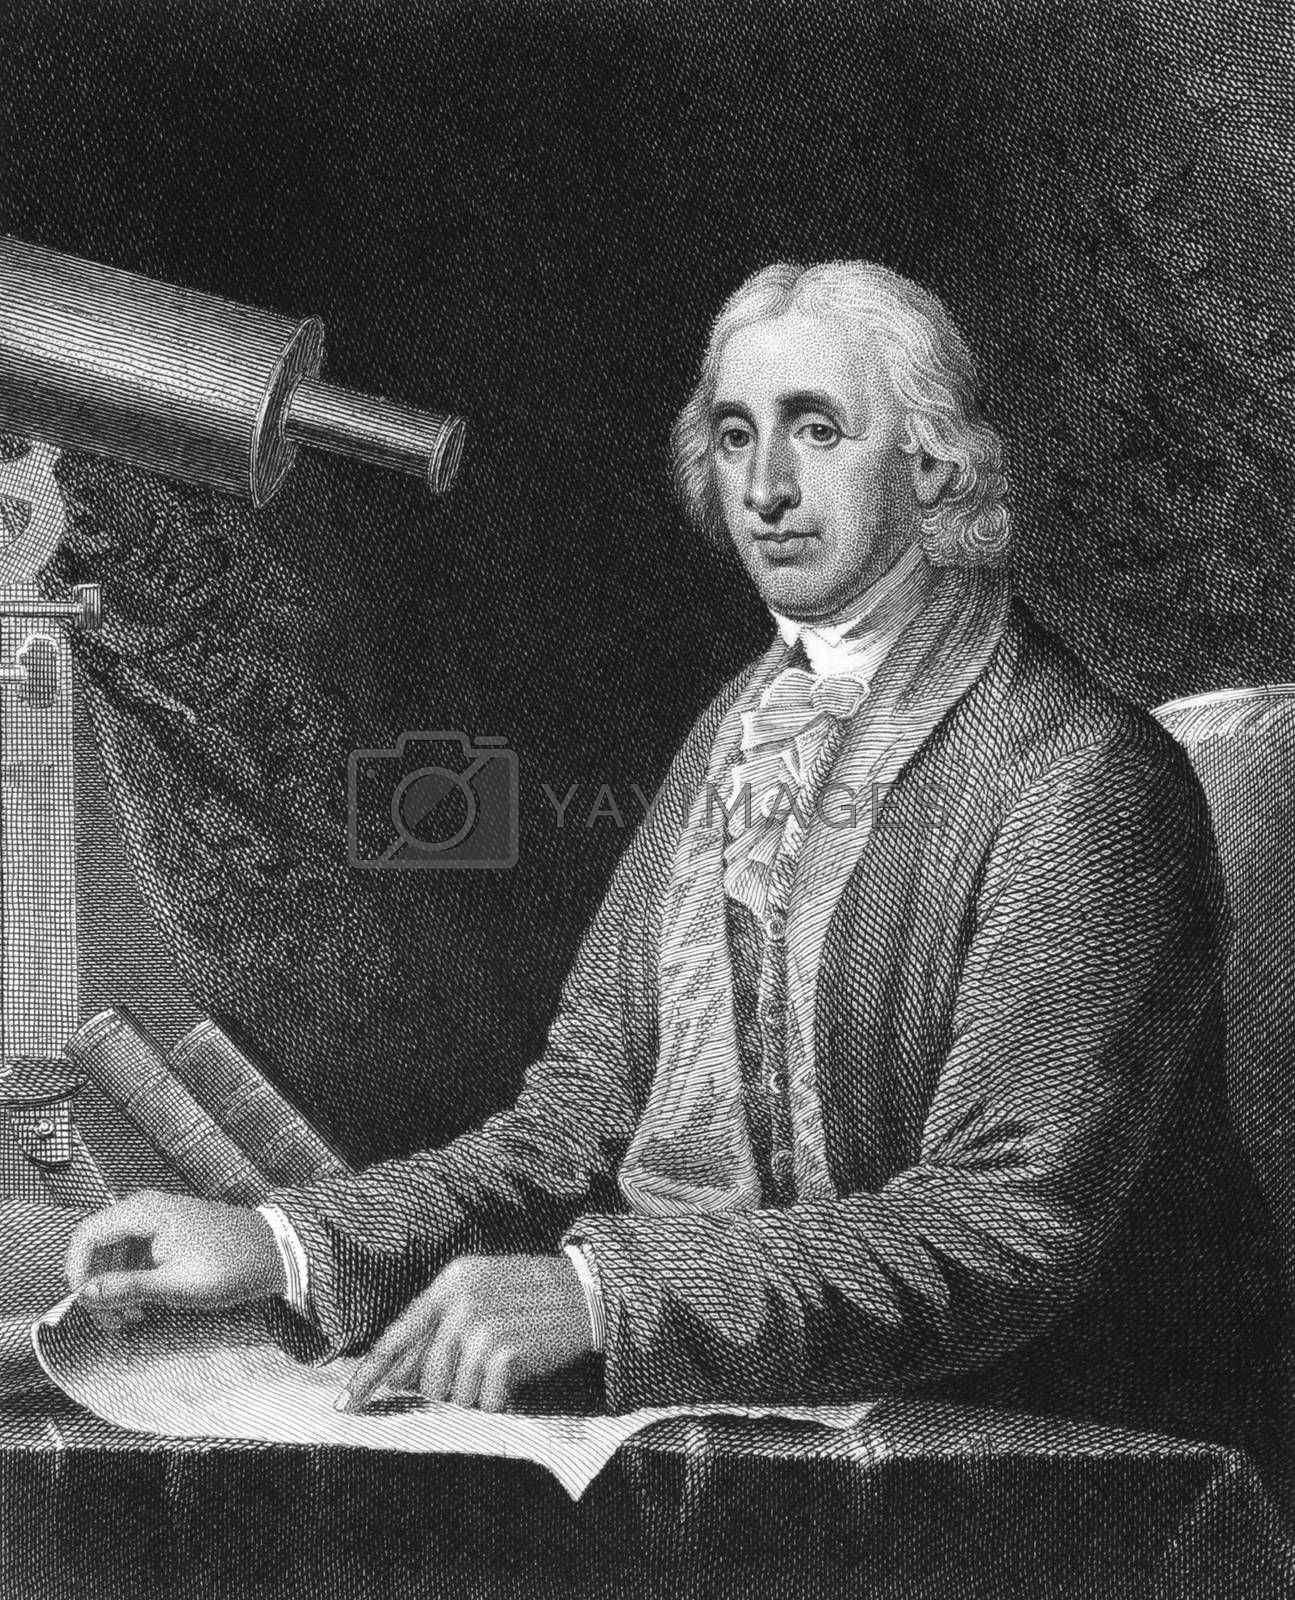 David Rittenhouse (1732-1796) on engraving from 1835. American astronomer, inventor, clockmaker, mathematician, surveyor, scientific instrument craftsman and public official. Engraved by J.B.Longacre and published in''National Portrait Gallery of Distinguished Americans Volume II'',USA,1835.